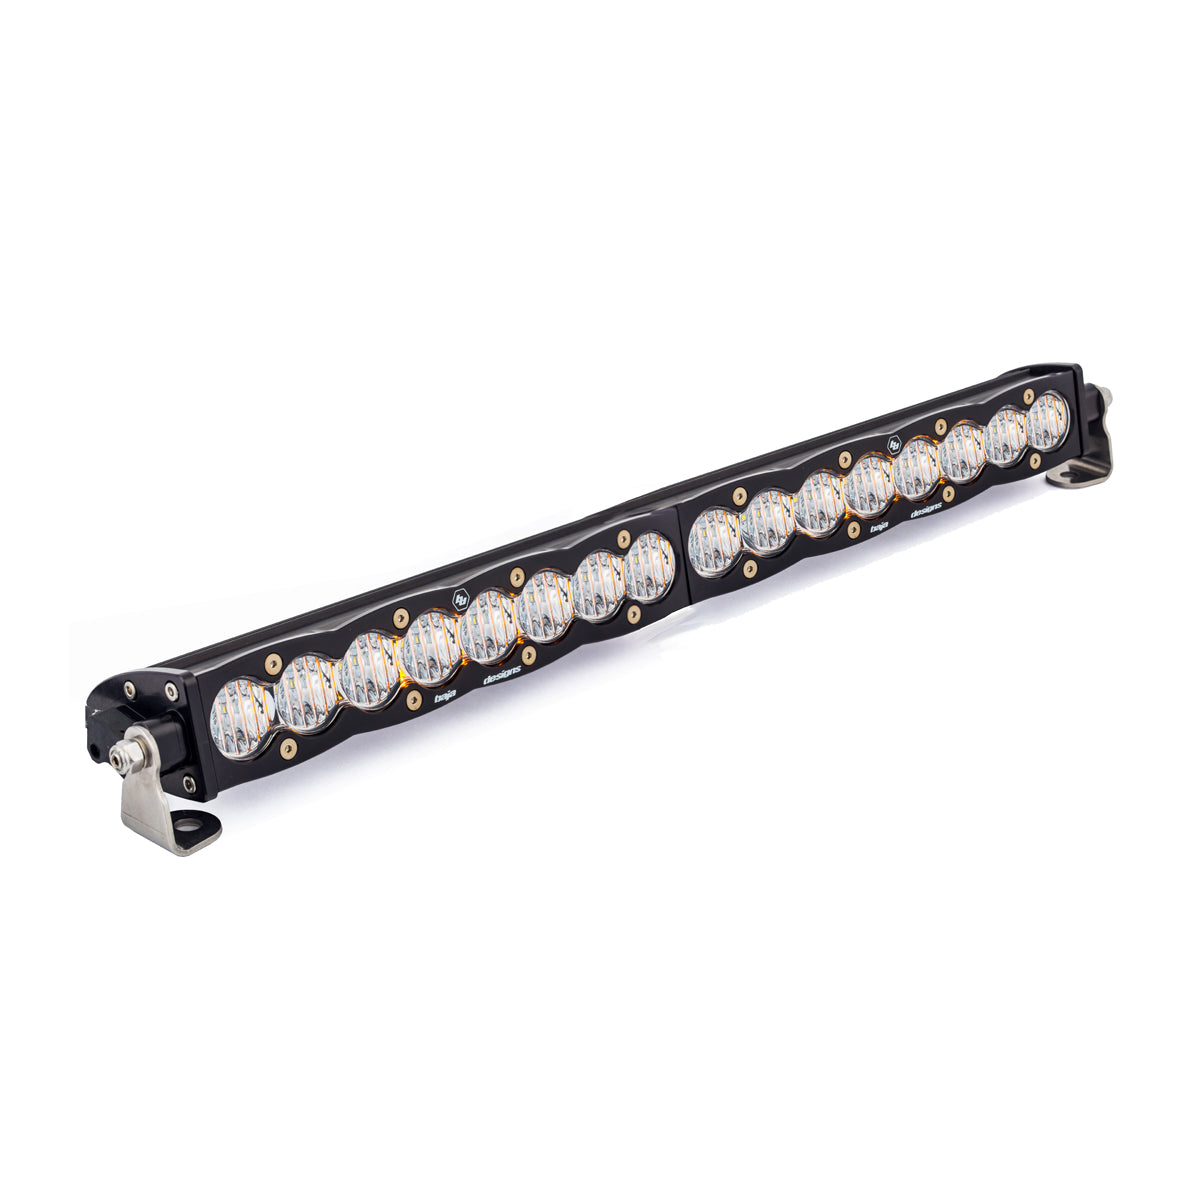 S8 Series Light Bar